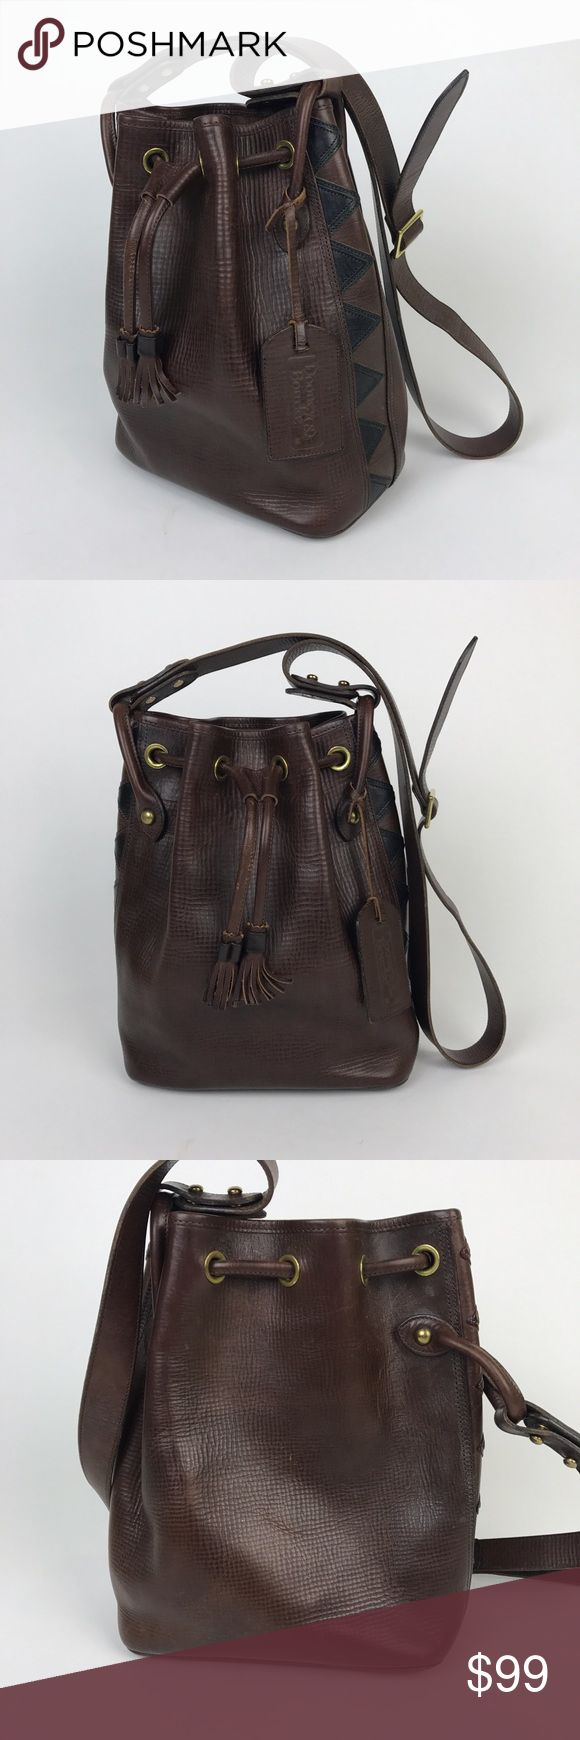 """[Vintage] Dooney & Bourke Aztec Bucket Bag Leather Rare vintage Dooney & Bourke bag. """"The Aztec"""" was a special edition limited production in the 1980s. Rich, brown textured thick Latigo cowhide. Large drawstring bucket bag. Vertical Southwestern designs on the sides. Leather luggage hang tag with Embossed logo.   🔹Dimensions: 9.5""""L x 5""""D x 12""""H 🔹Strap Drop: 21"""" 🔹Condition: Excellent vintage/pre-owned condition. Normal scuffs and surface scratches. Clean and no major signs of wear…"""